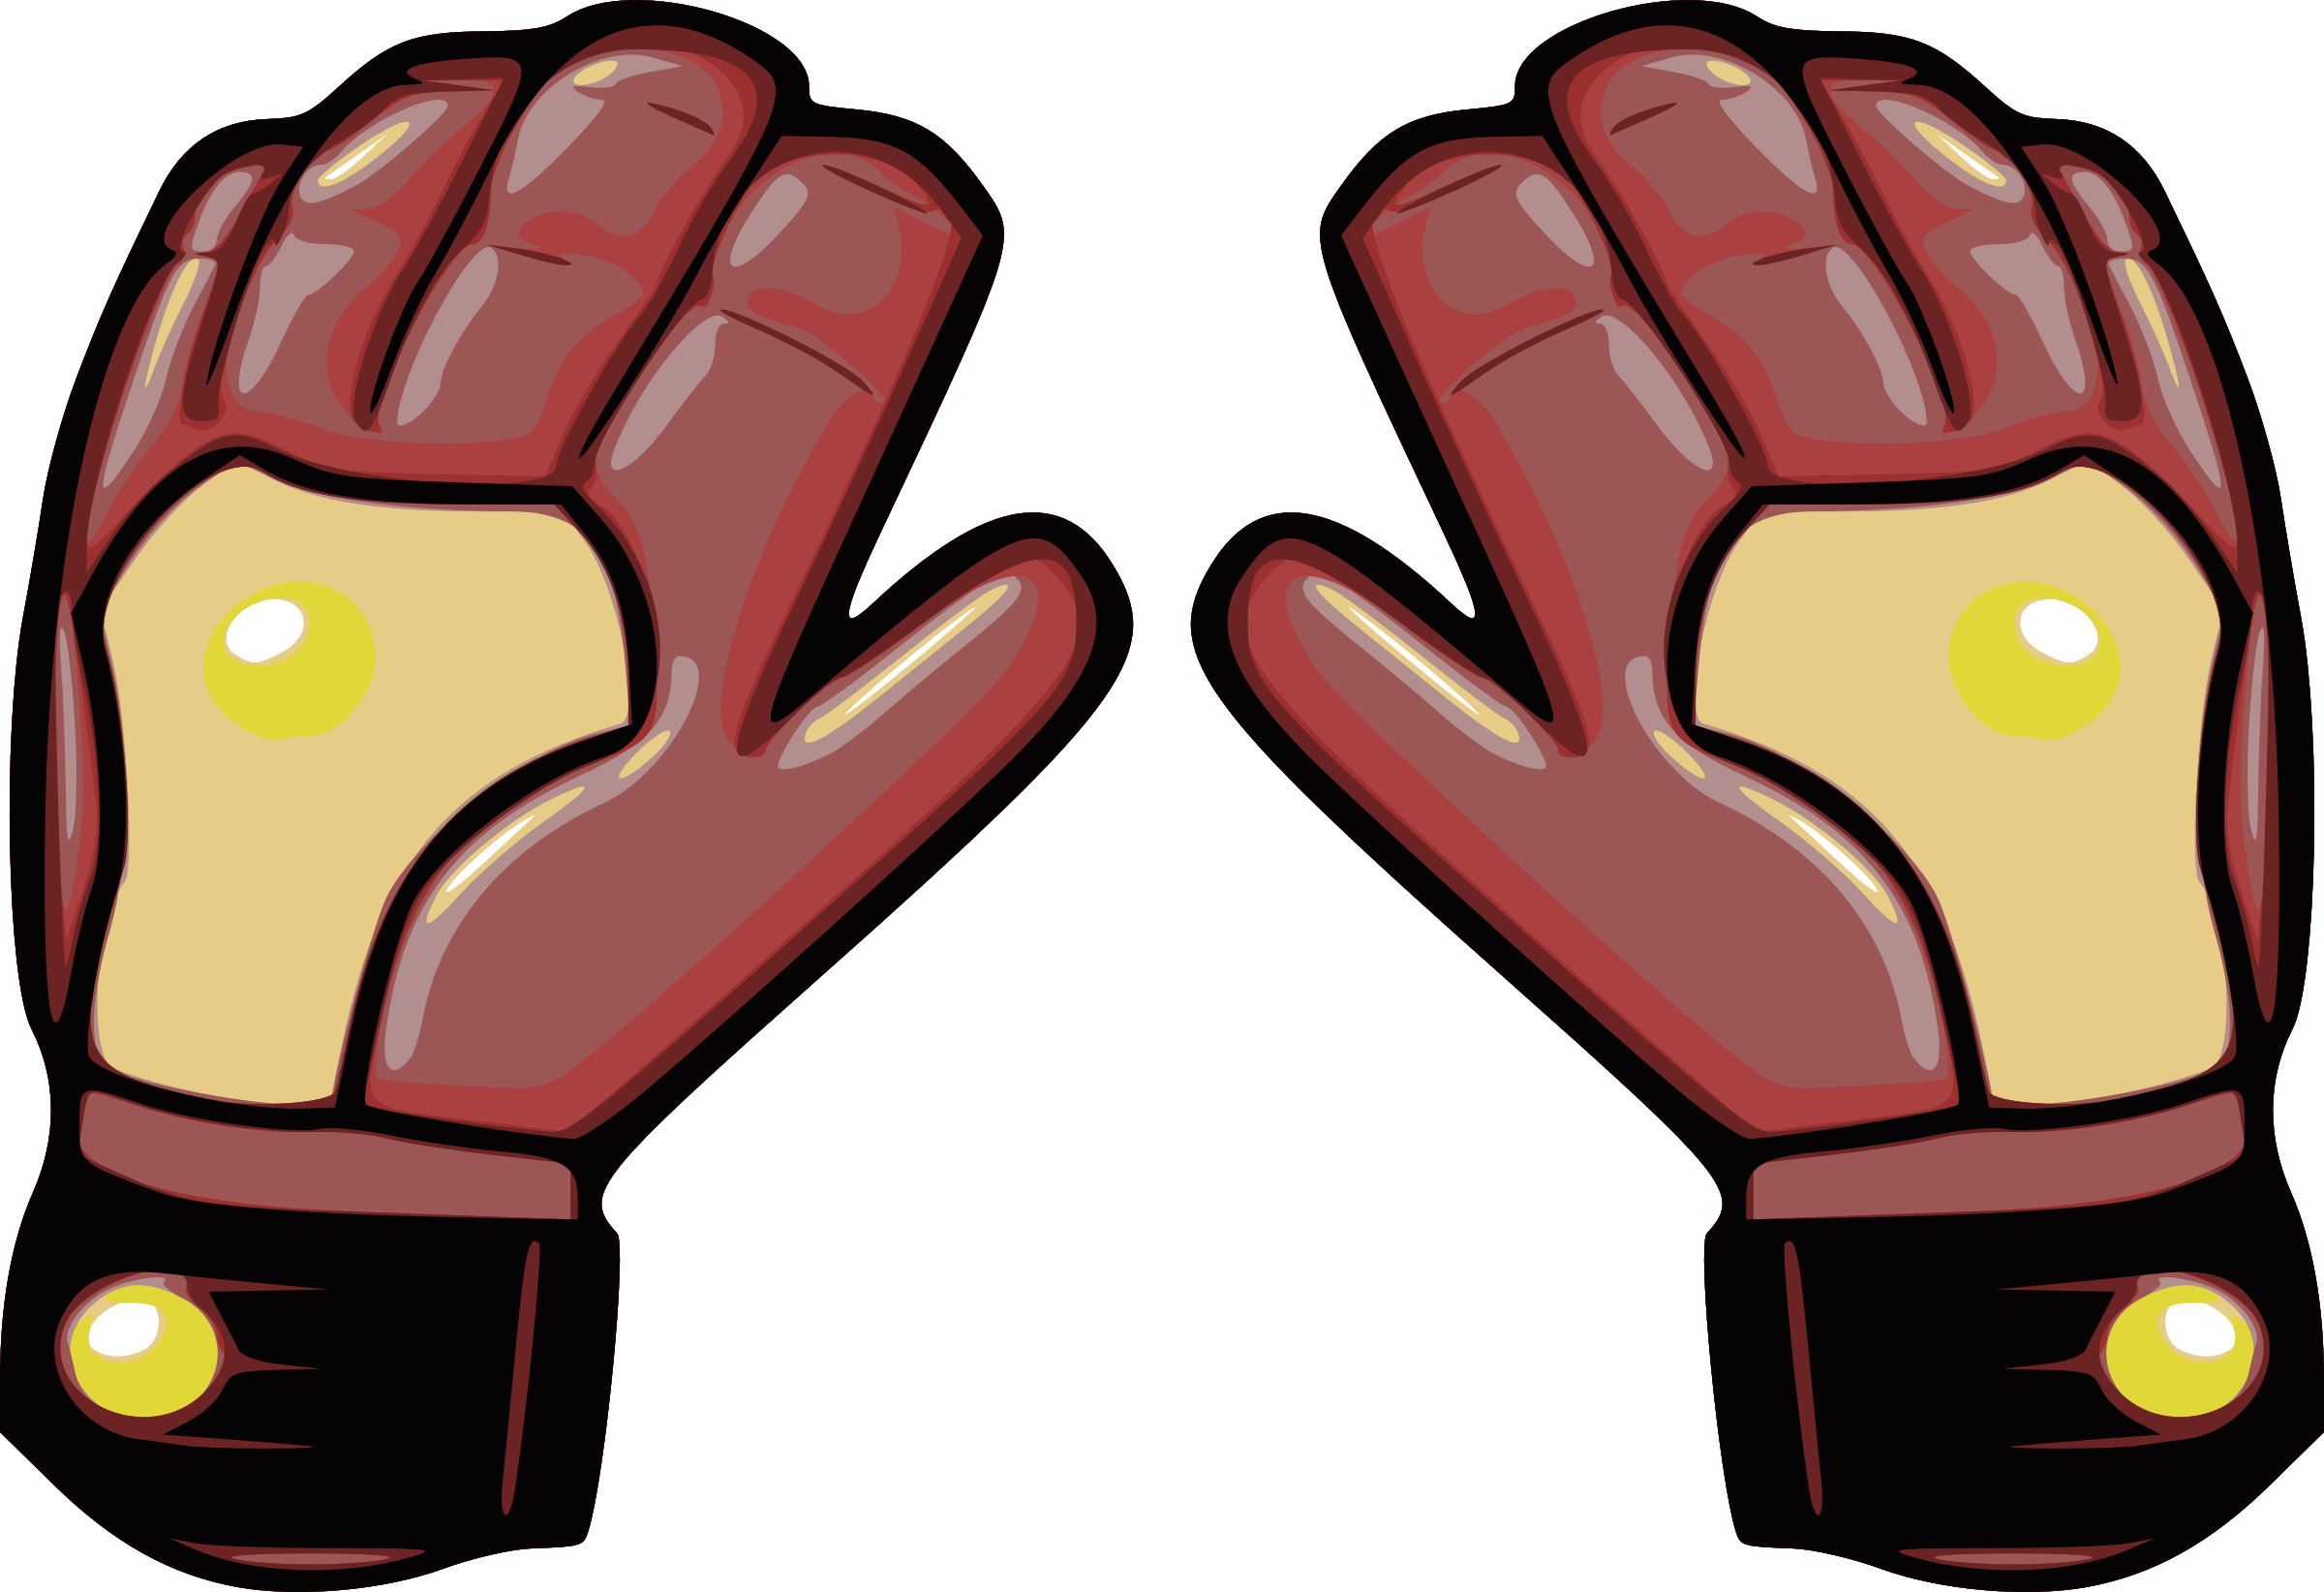 Mittens clipart printable. Gloves icons png free